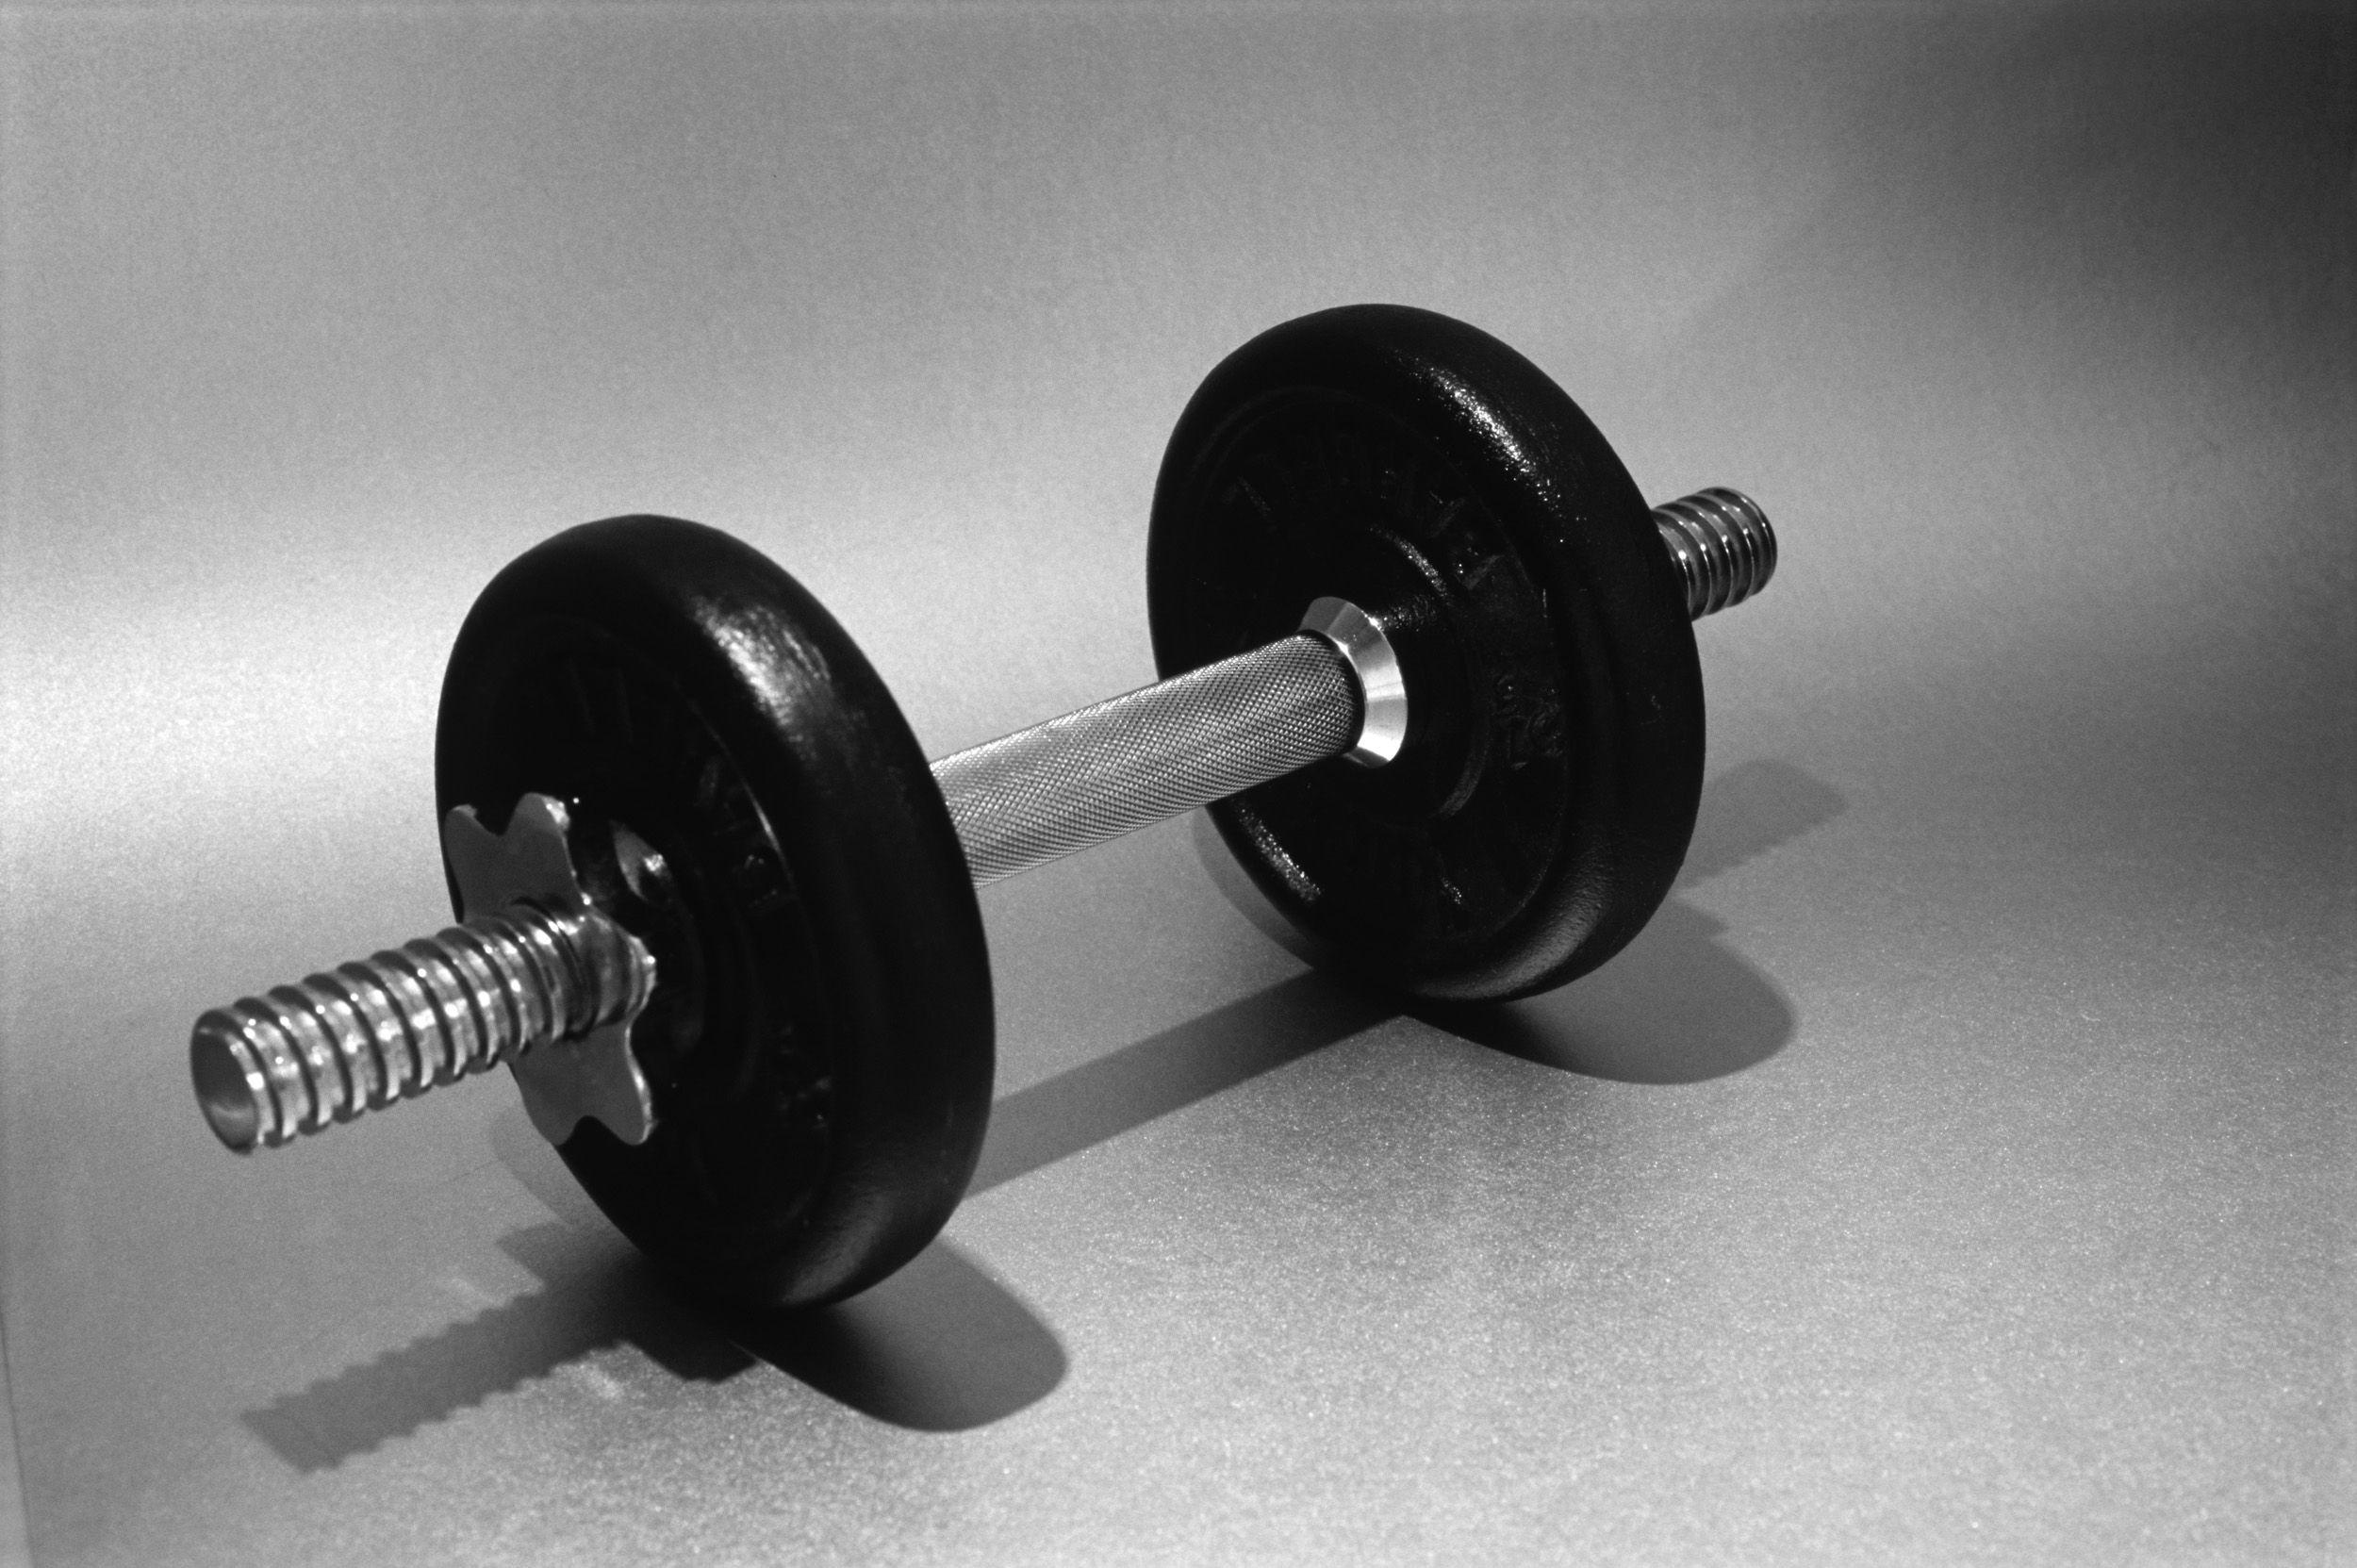 Dumbbell Wallpapers - REuuN.com